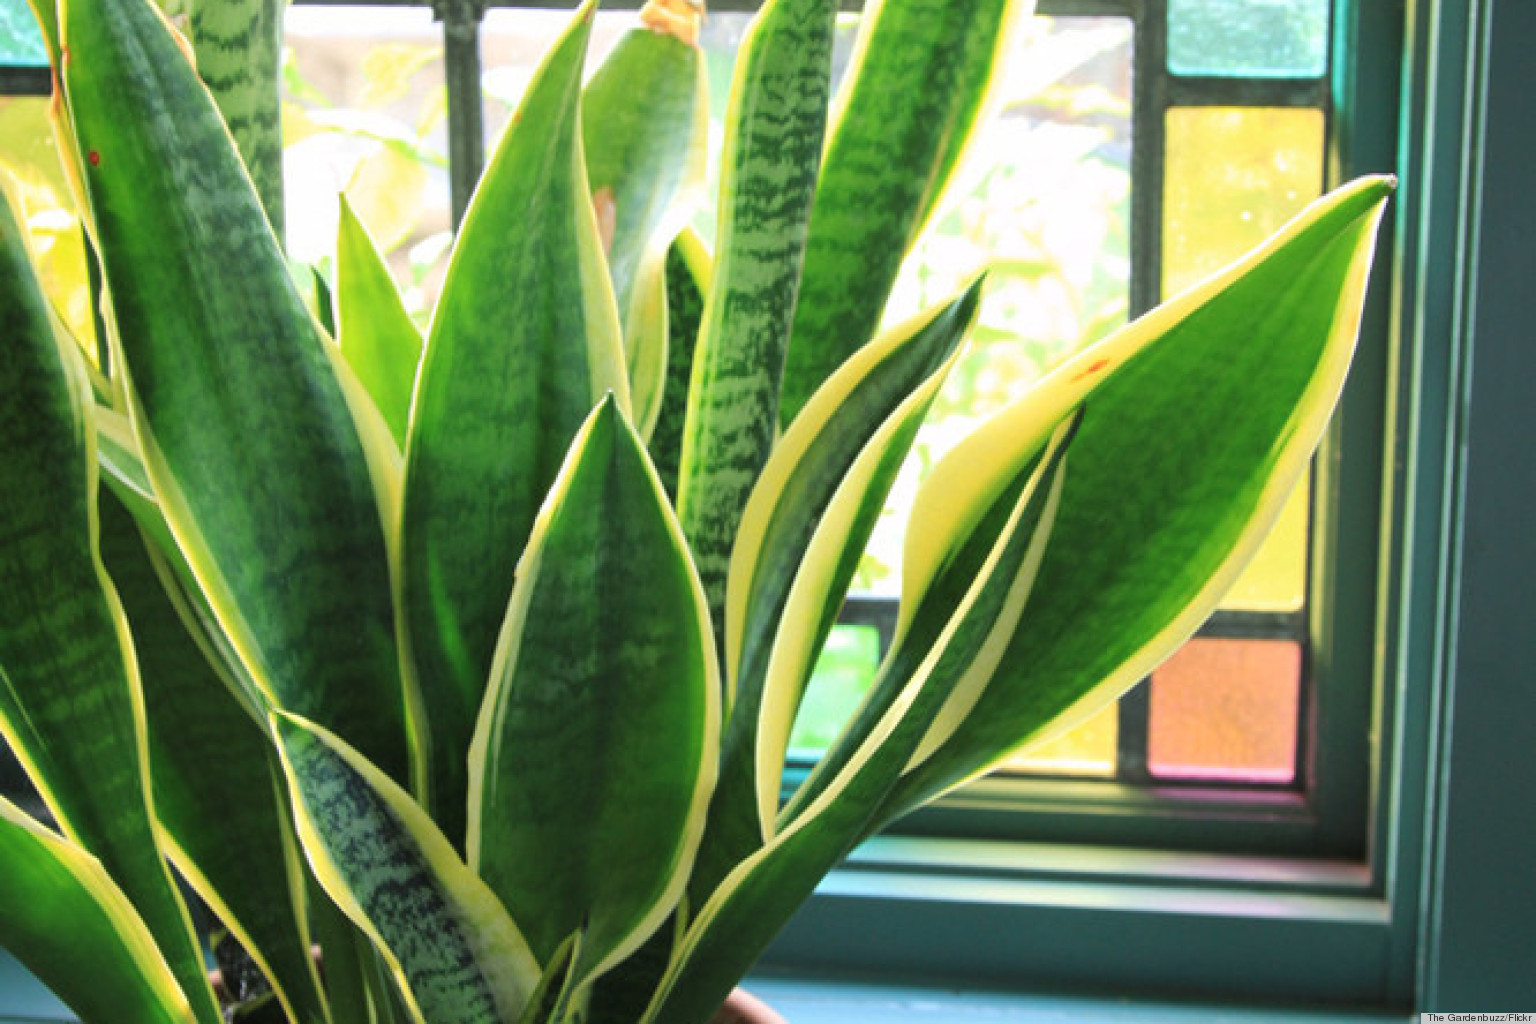 Caring For Tropical Plants Part - 26: 6 Houseplants That Are Low-Maintenance And Easy To Care For (PHOTOS) |  HuffPost